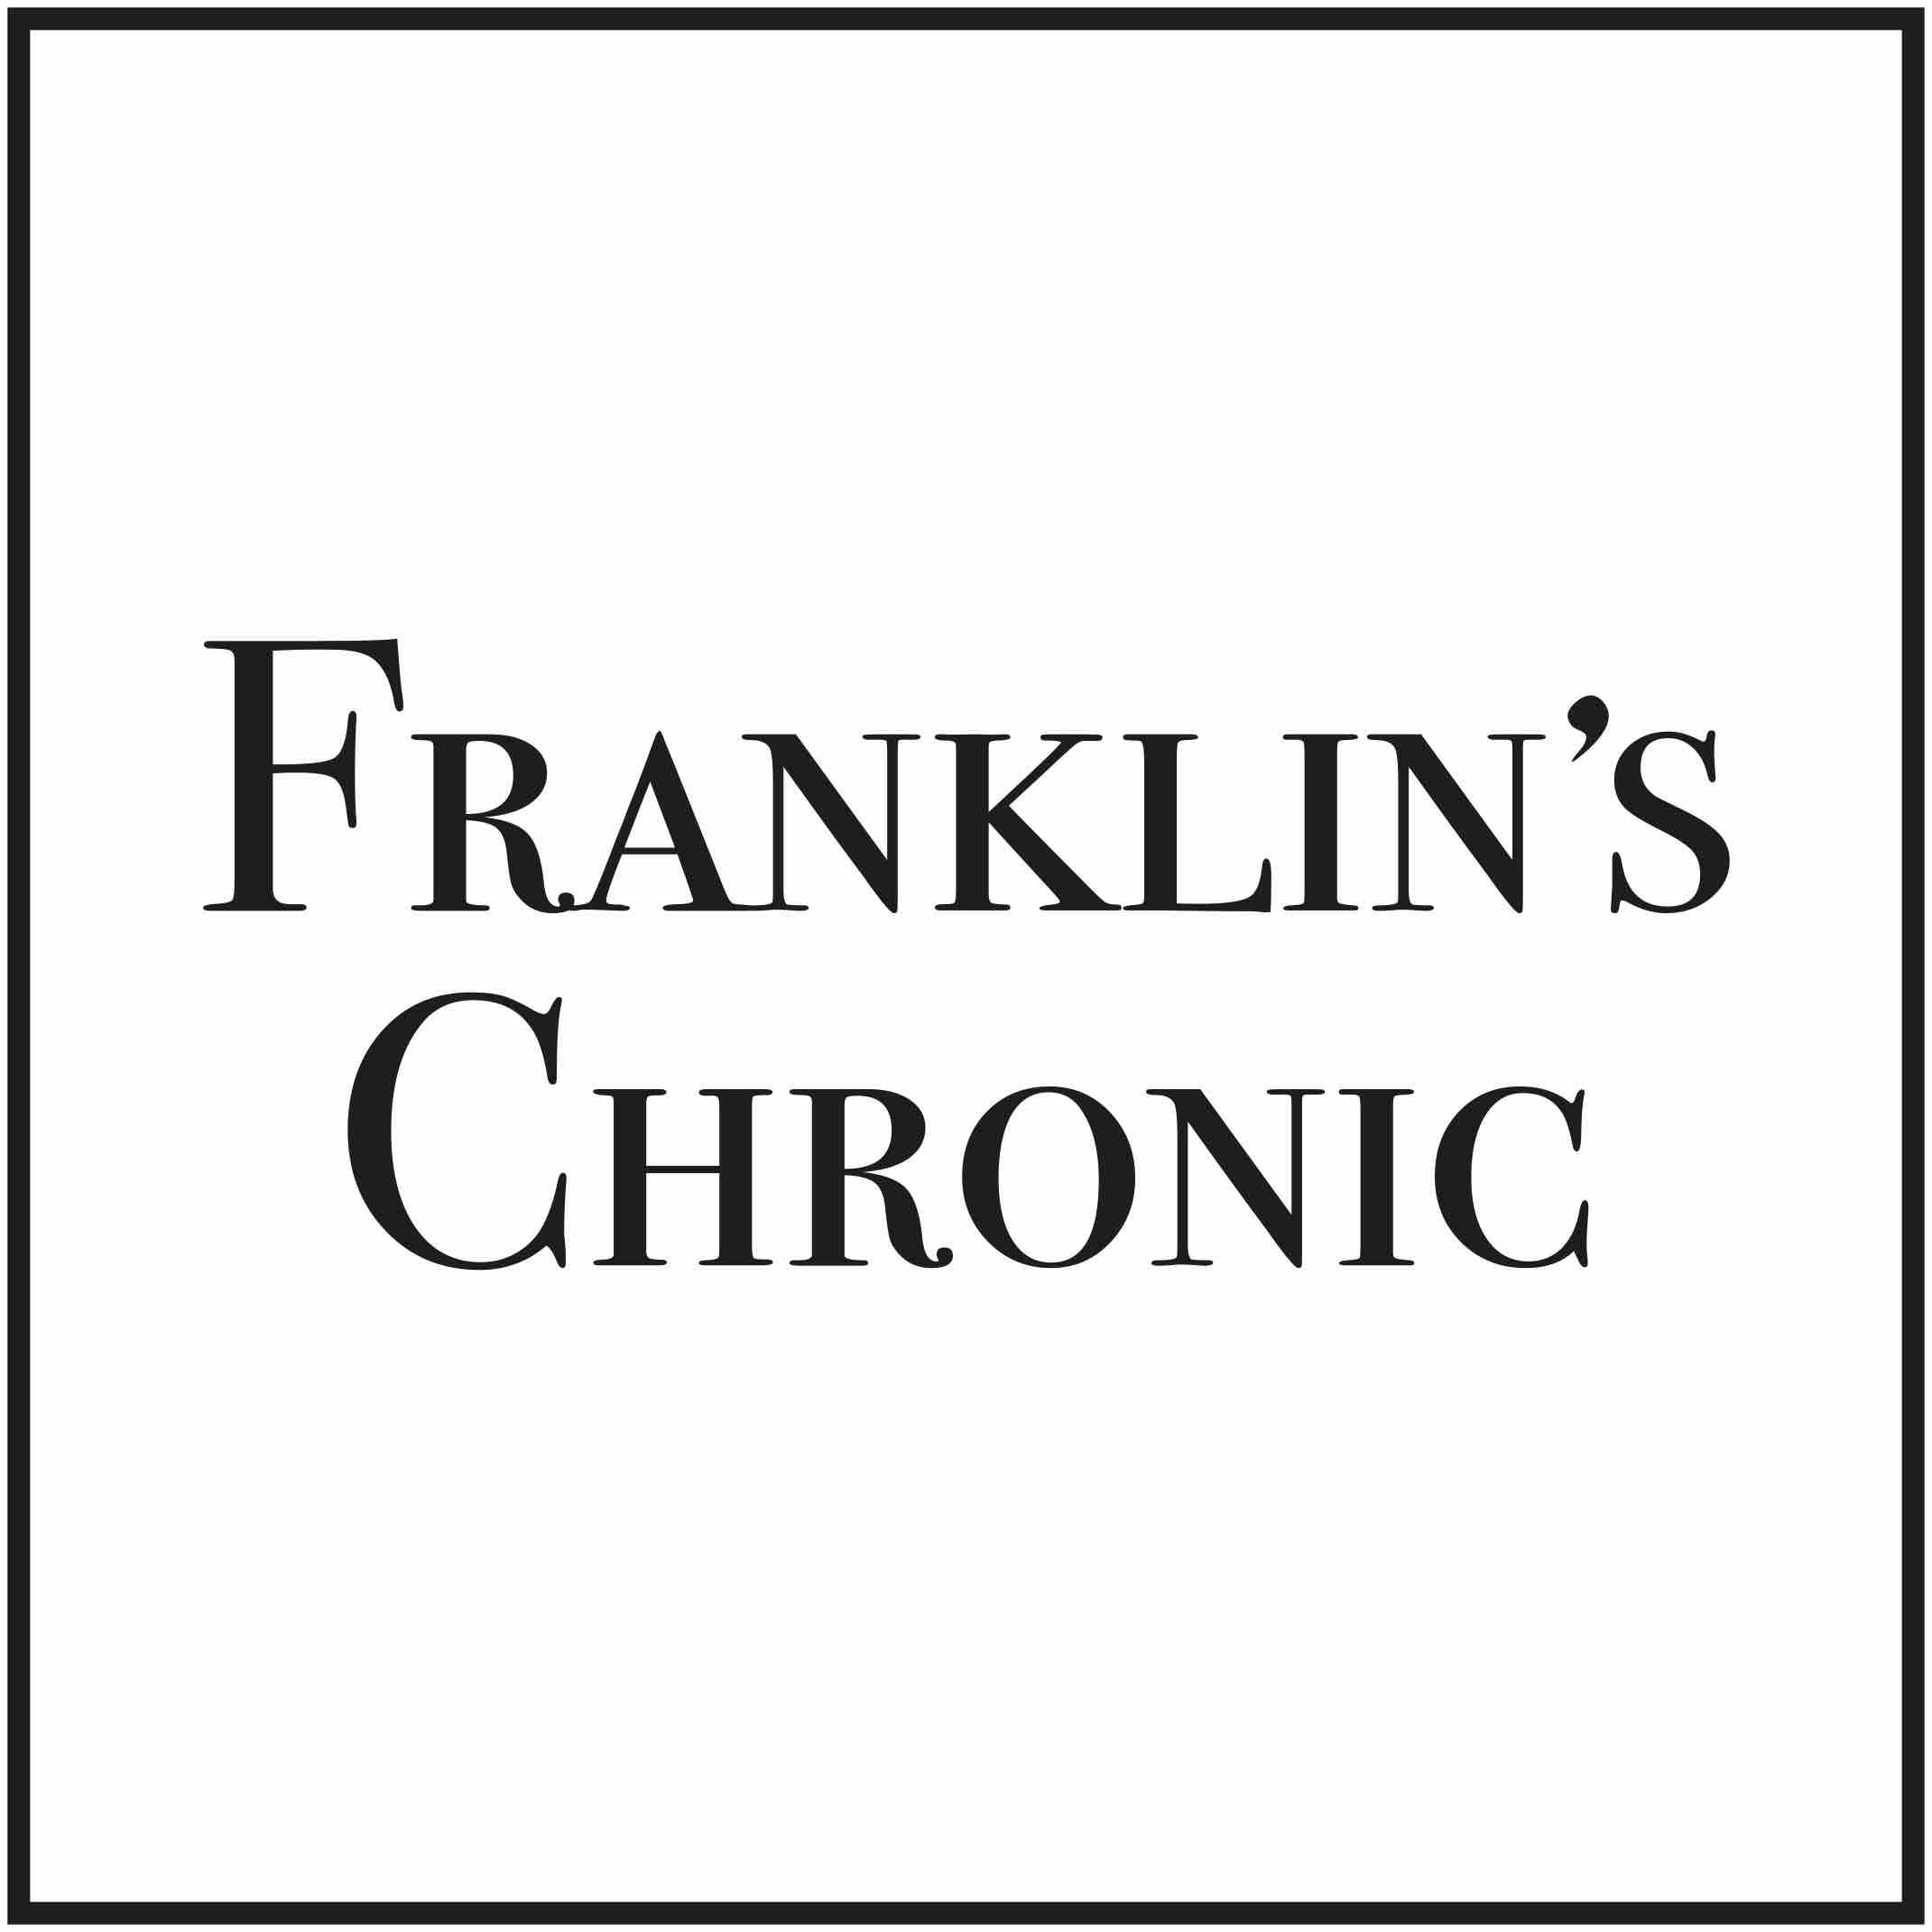 Franklins Chronic